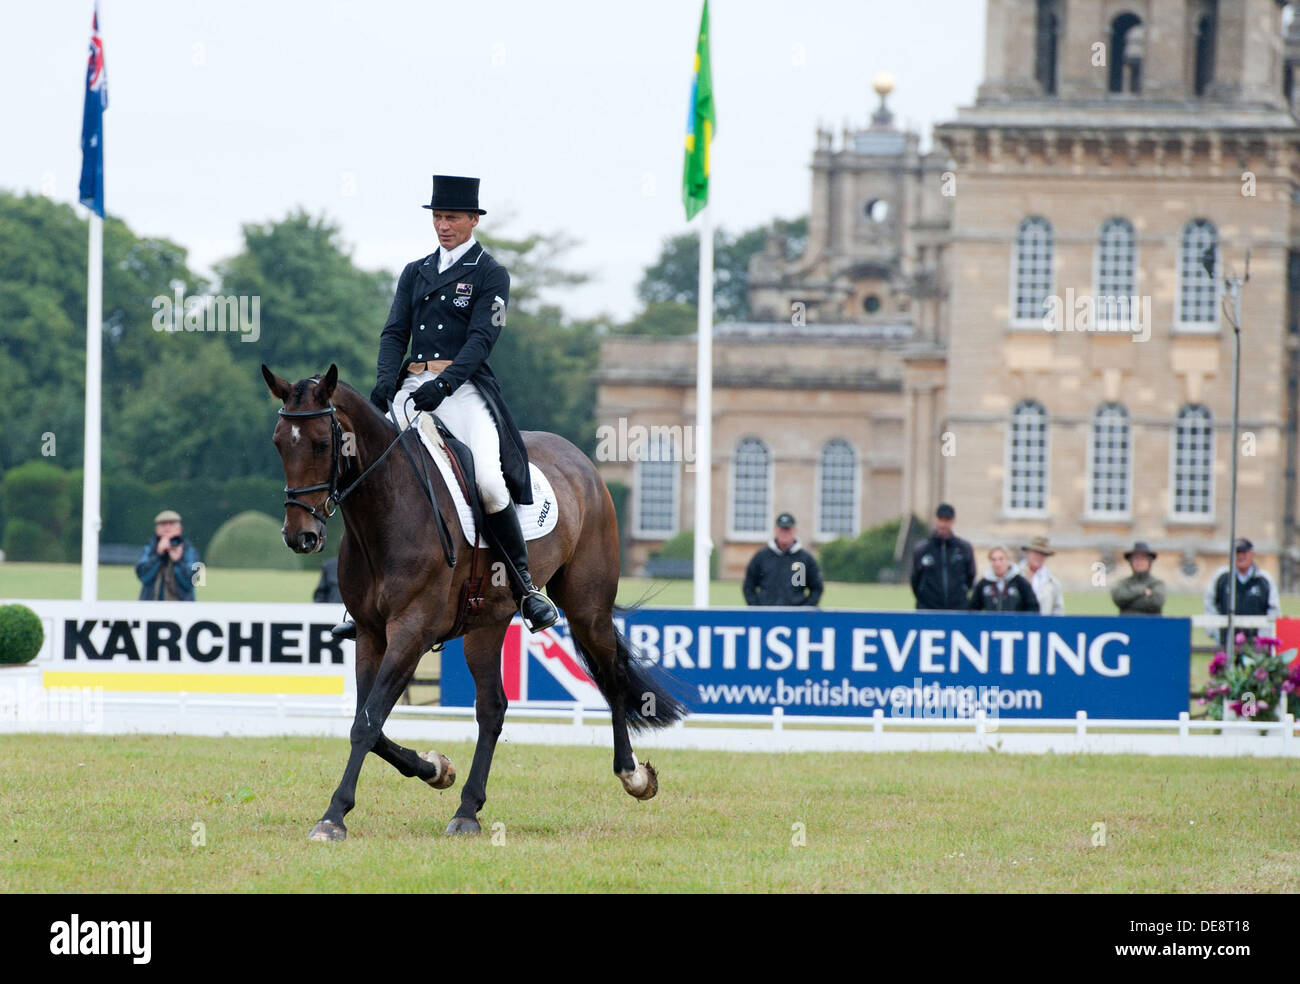 2013 Fidelity Blenheim Palace Horse Trials. Woodstock Oxford, England. Friday 13th September. Andrew Nicholson (NZL) with Viscount George  during the dressage phase CCI*** three day event Credit:  Julie Badrick/Alamy Live News - Stock Image